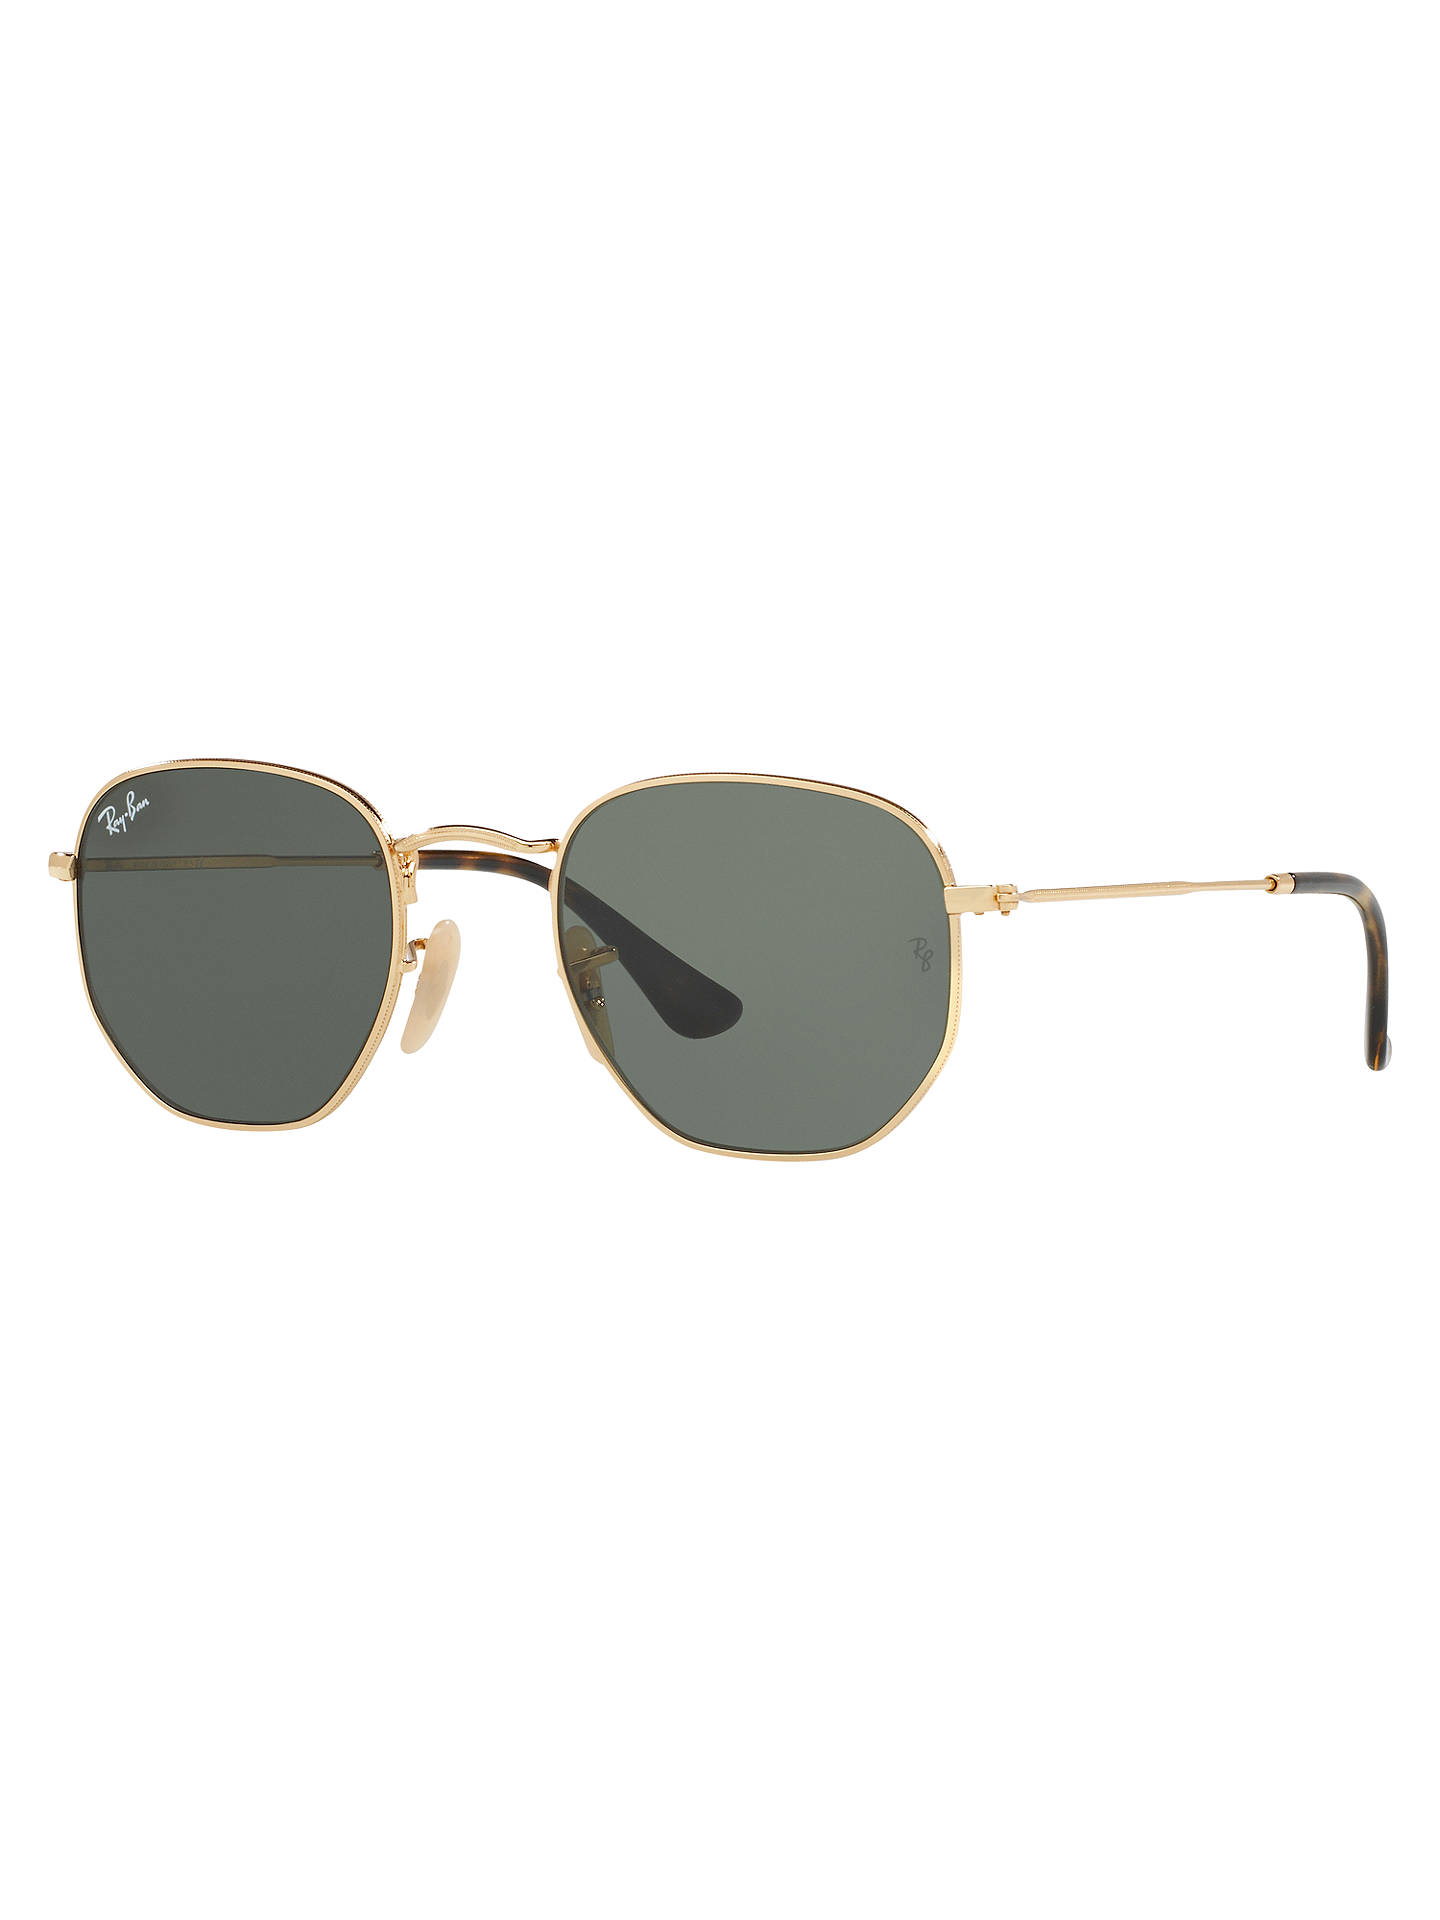 c2c60b0b443 Ray-Ban RB3548 Hexagonal Flat Lens Sunglasses at John Lewis   Partners